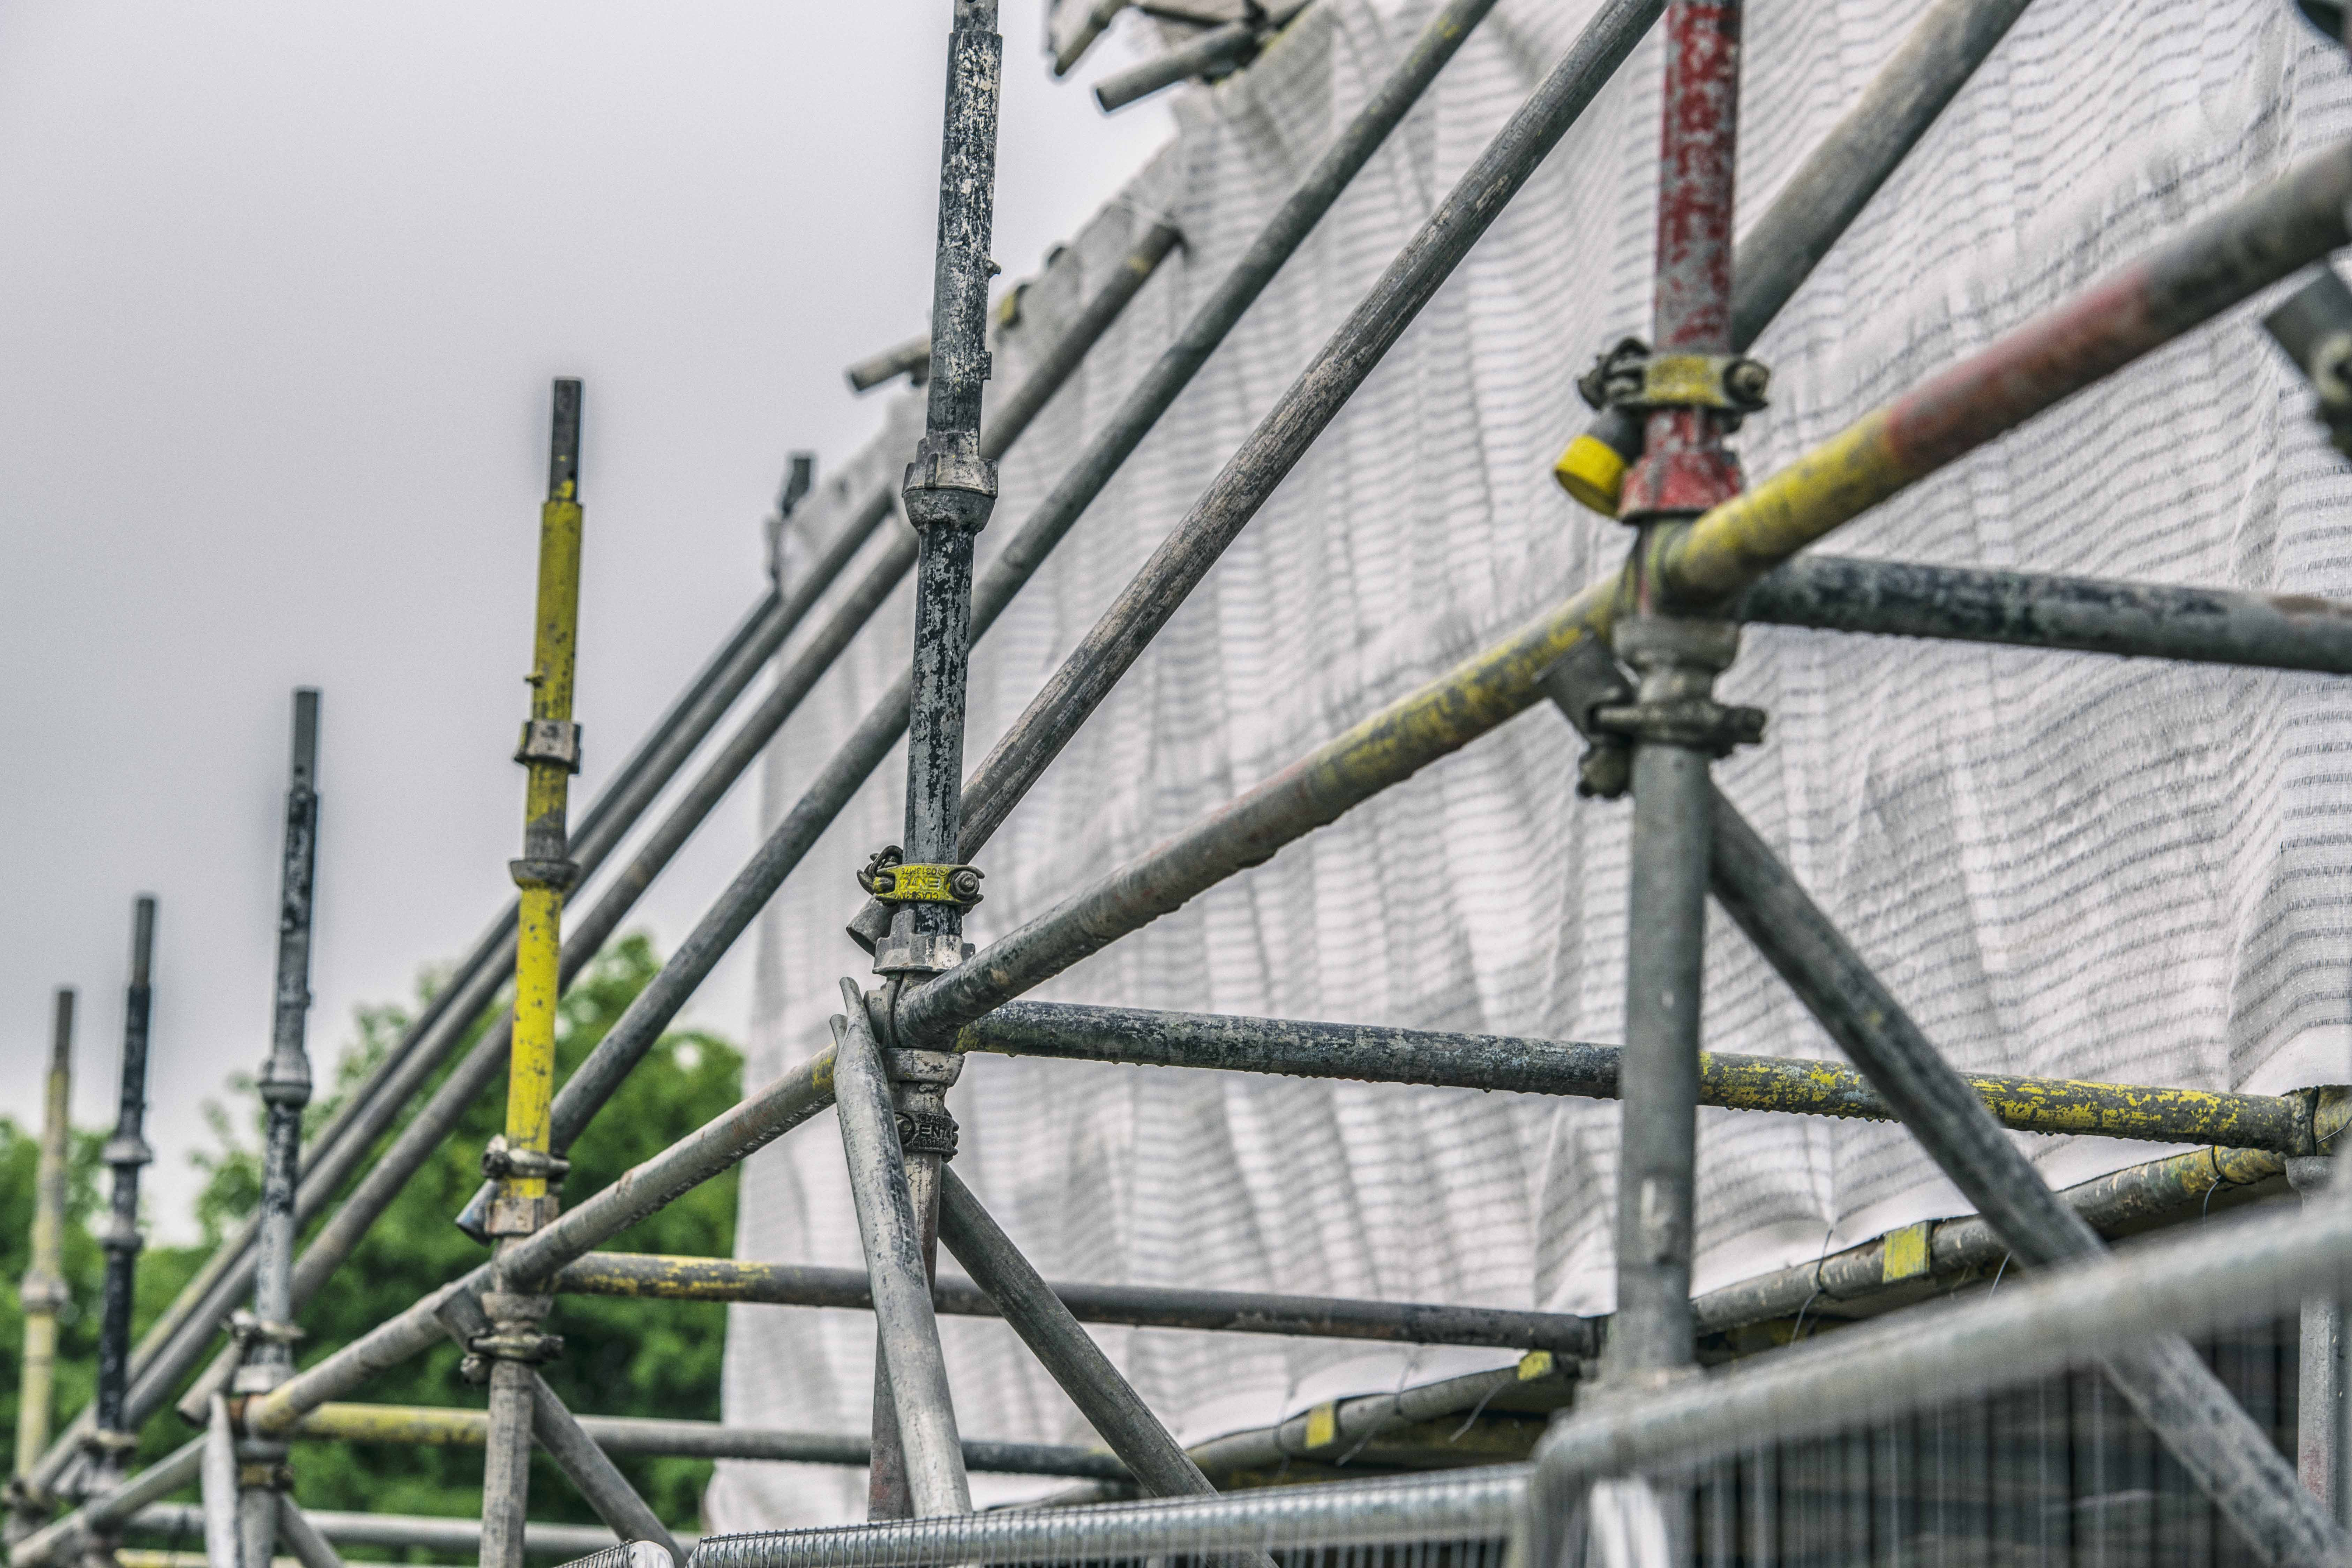 Scaffolding set up with safety netting fitted